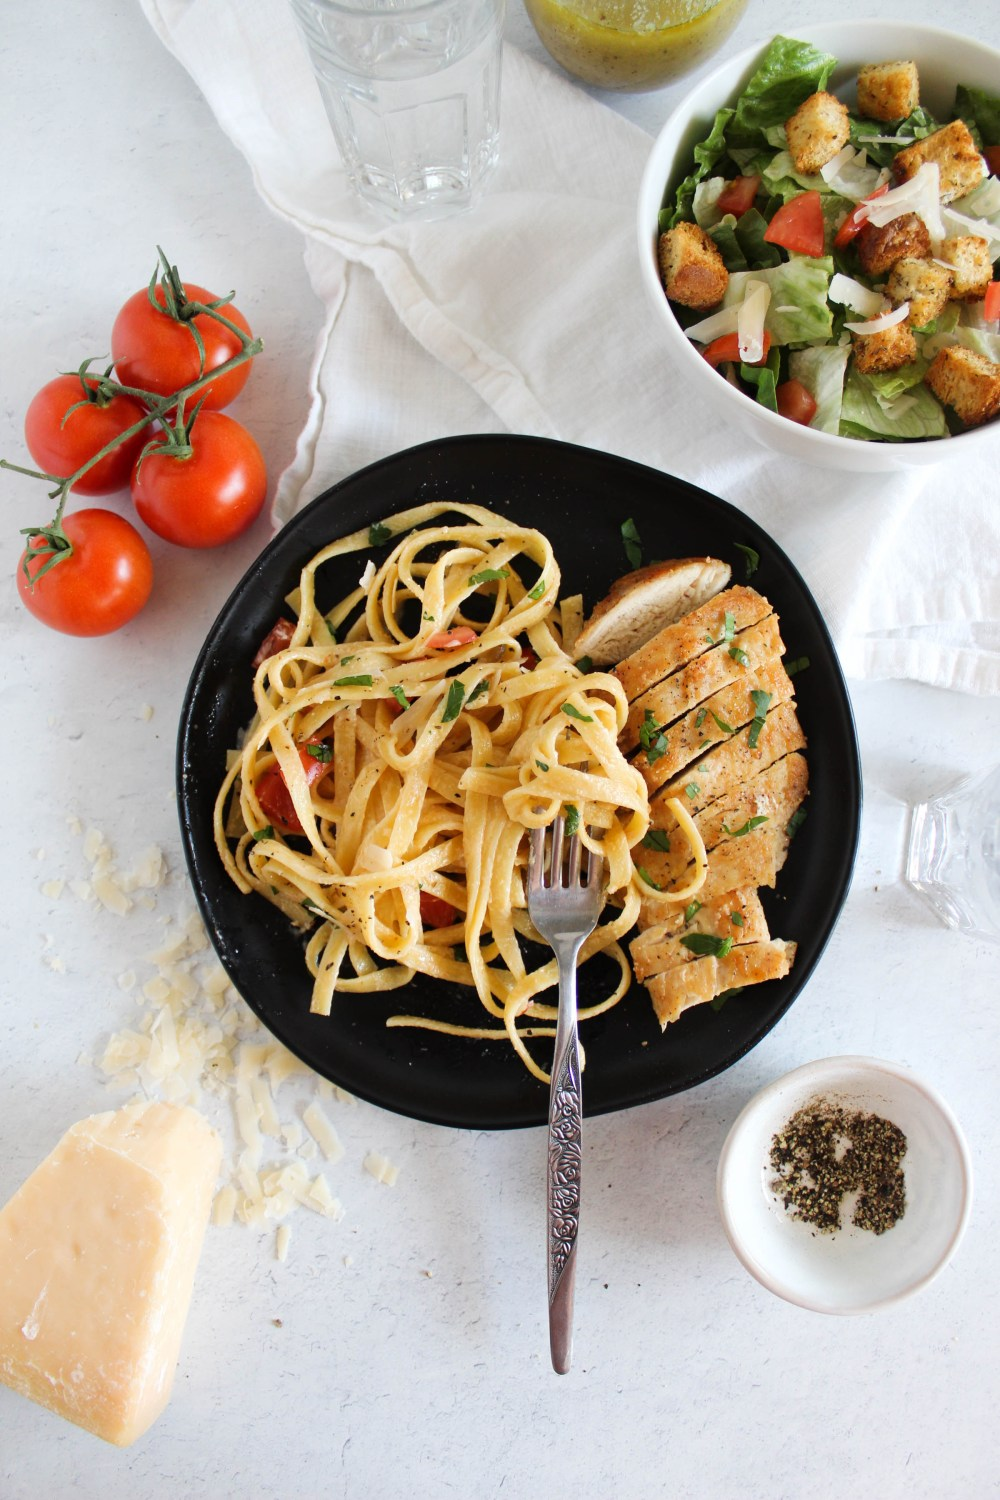 overhead view of the healthier cajun chicken pasta with fork in the plate as if a bite was taken.